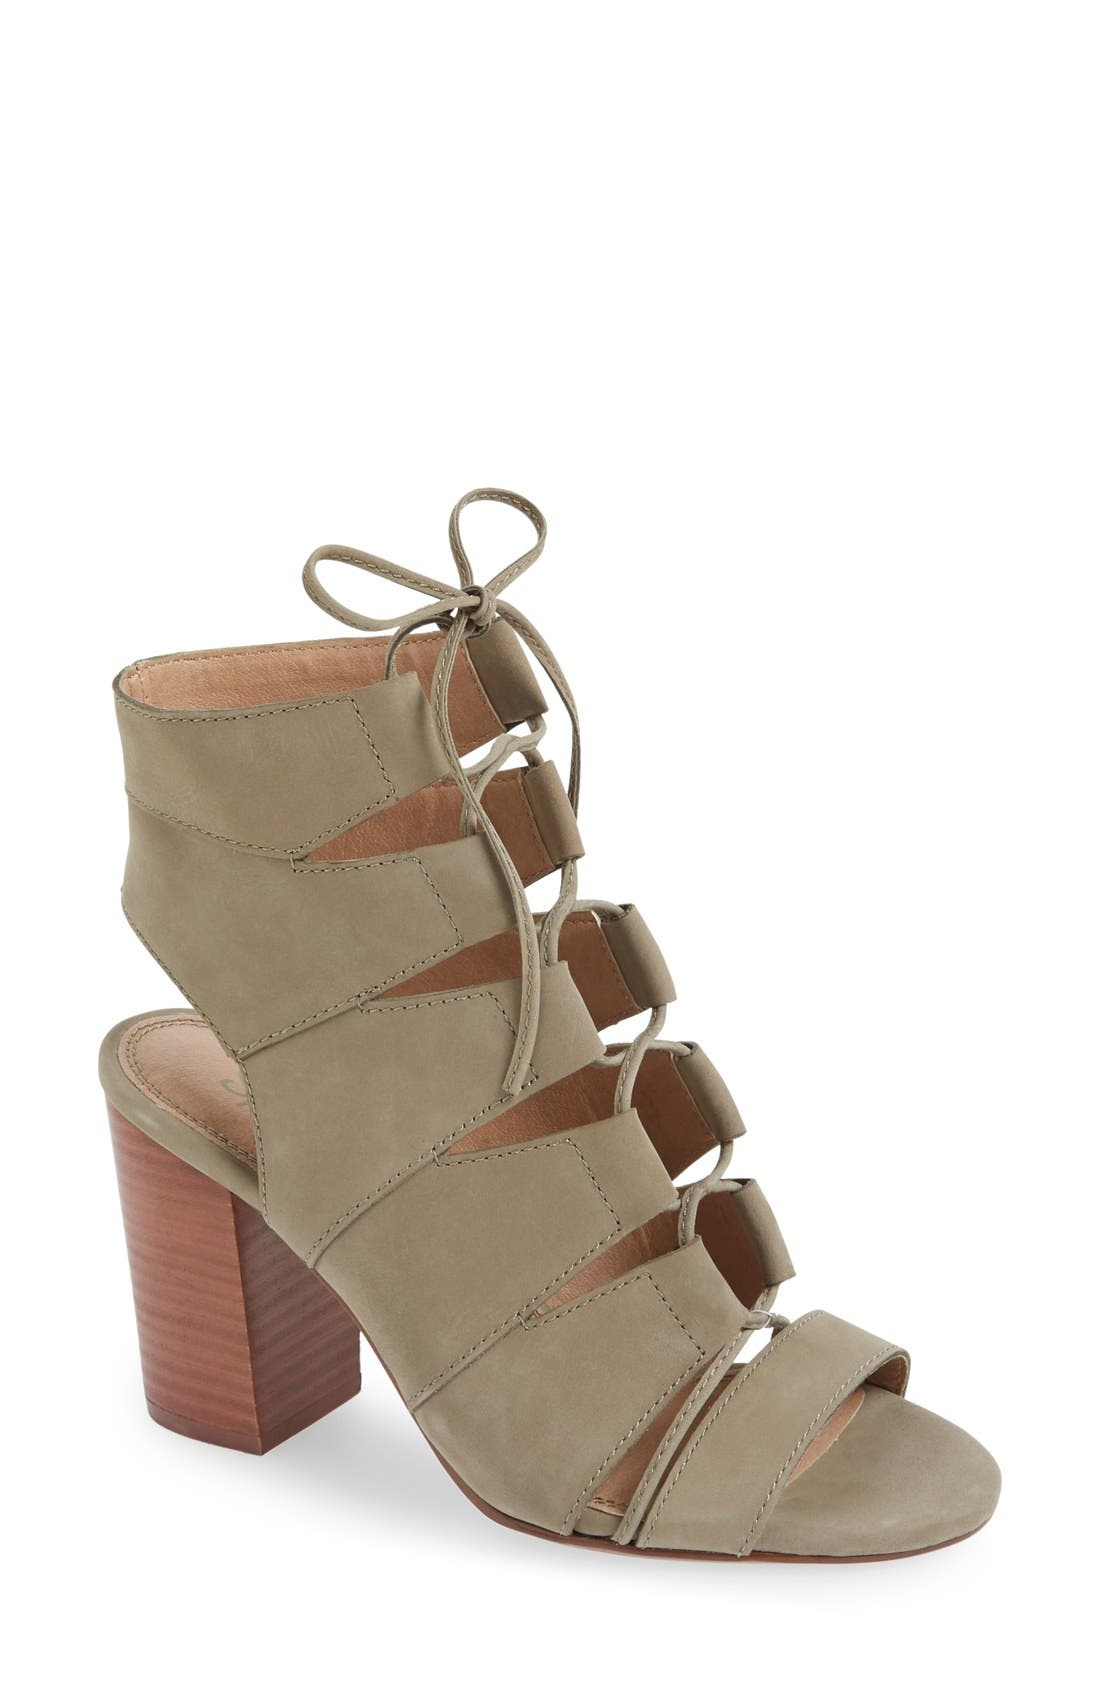 Main Image - Splendid 'Banden' Lace-up Sandal (Women)